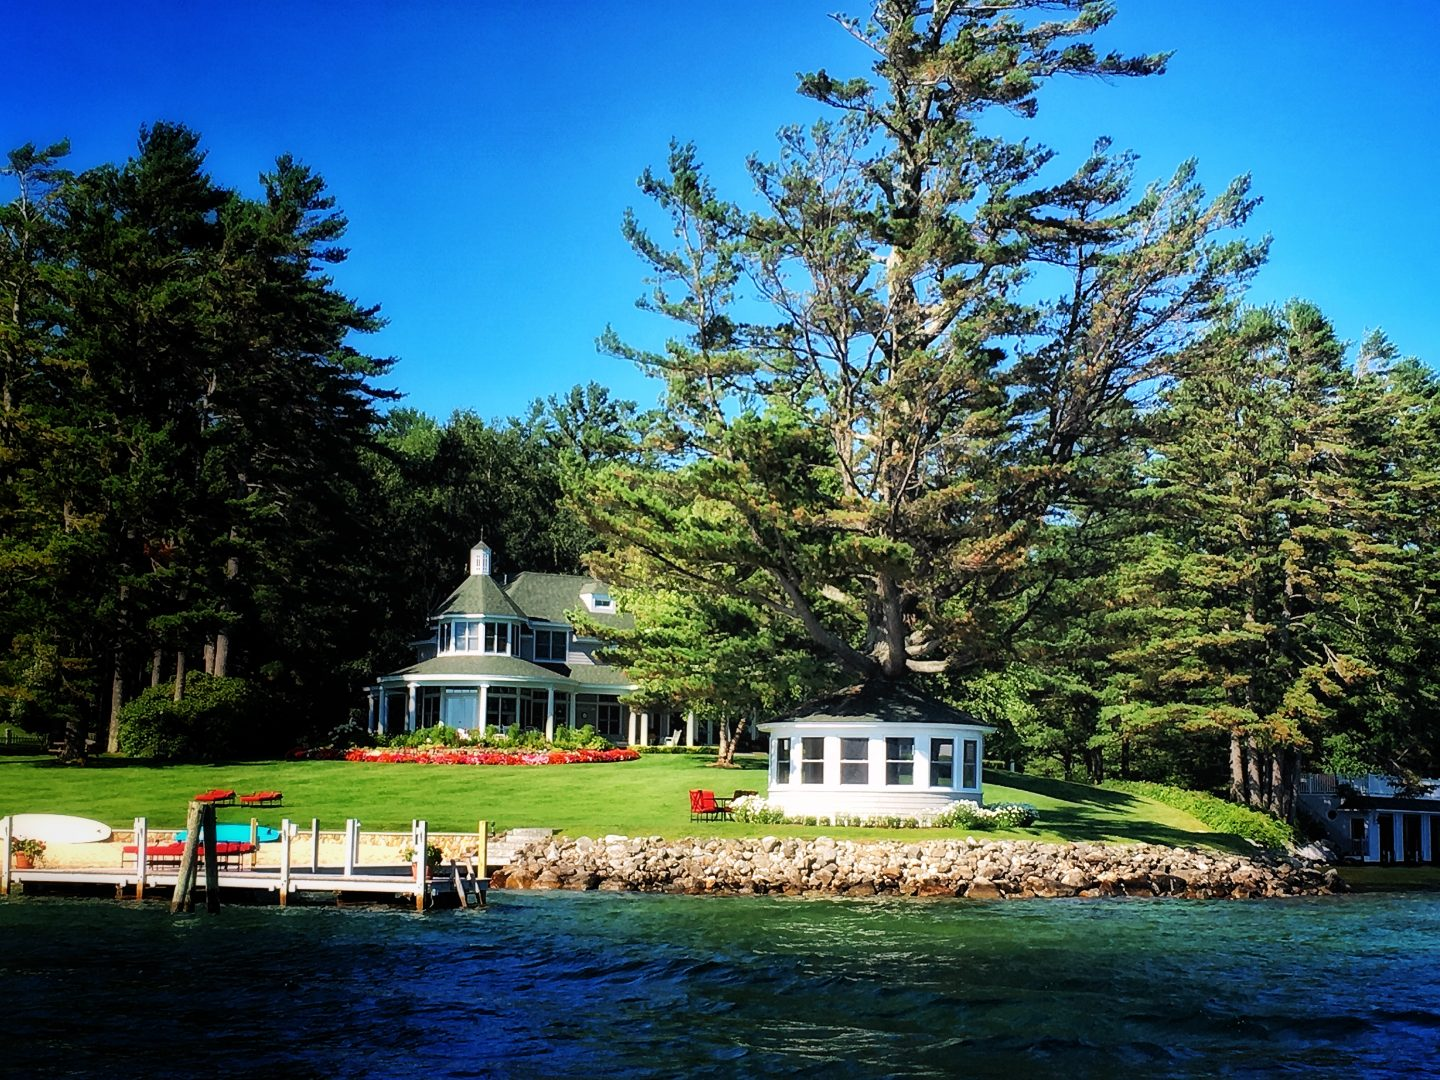 A Little Murder Tour, Lake Winnipesaukee, New Hampshire